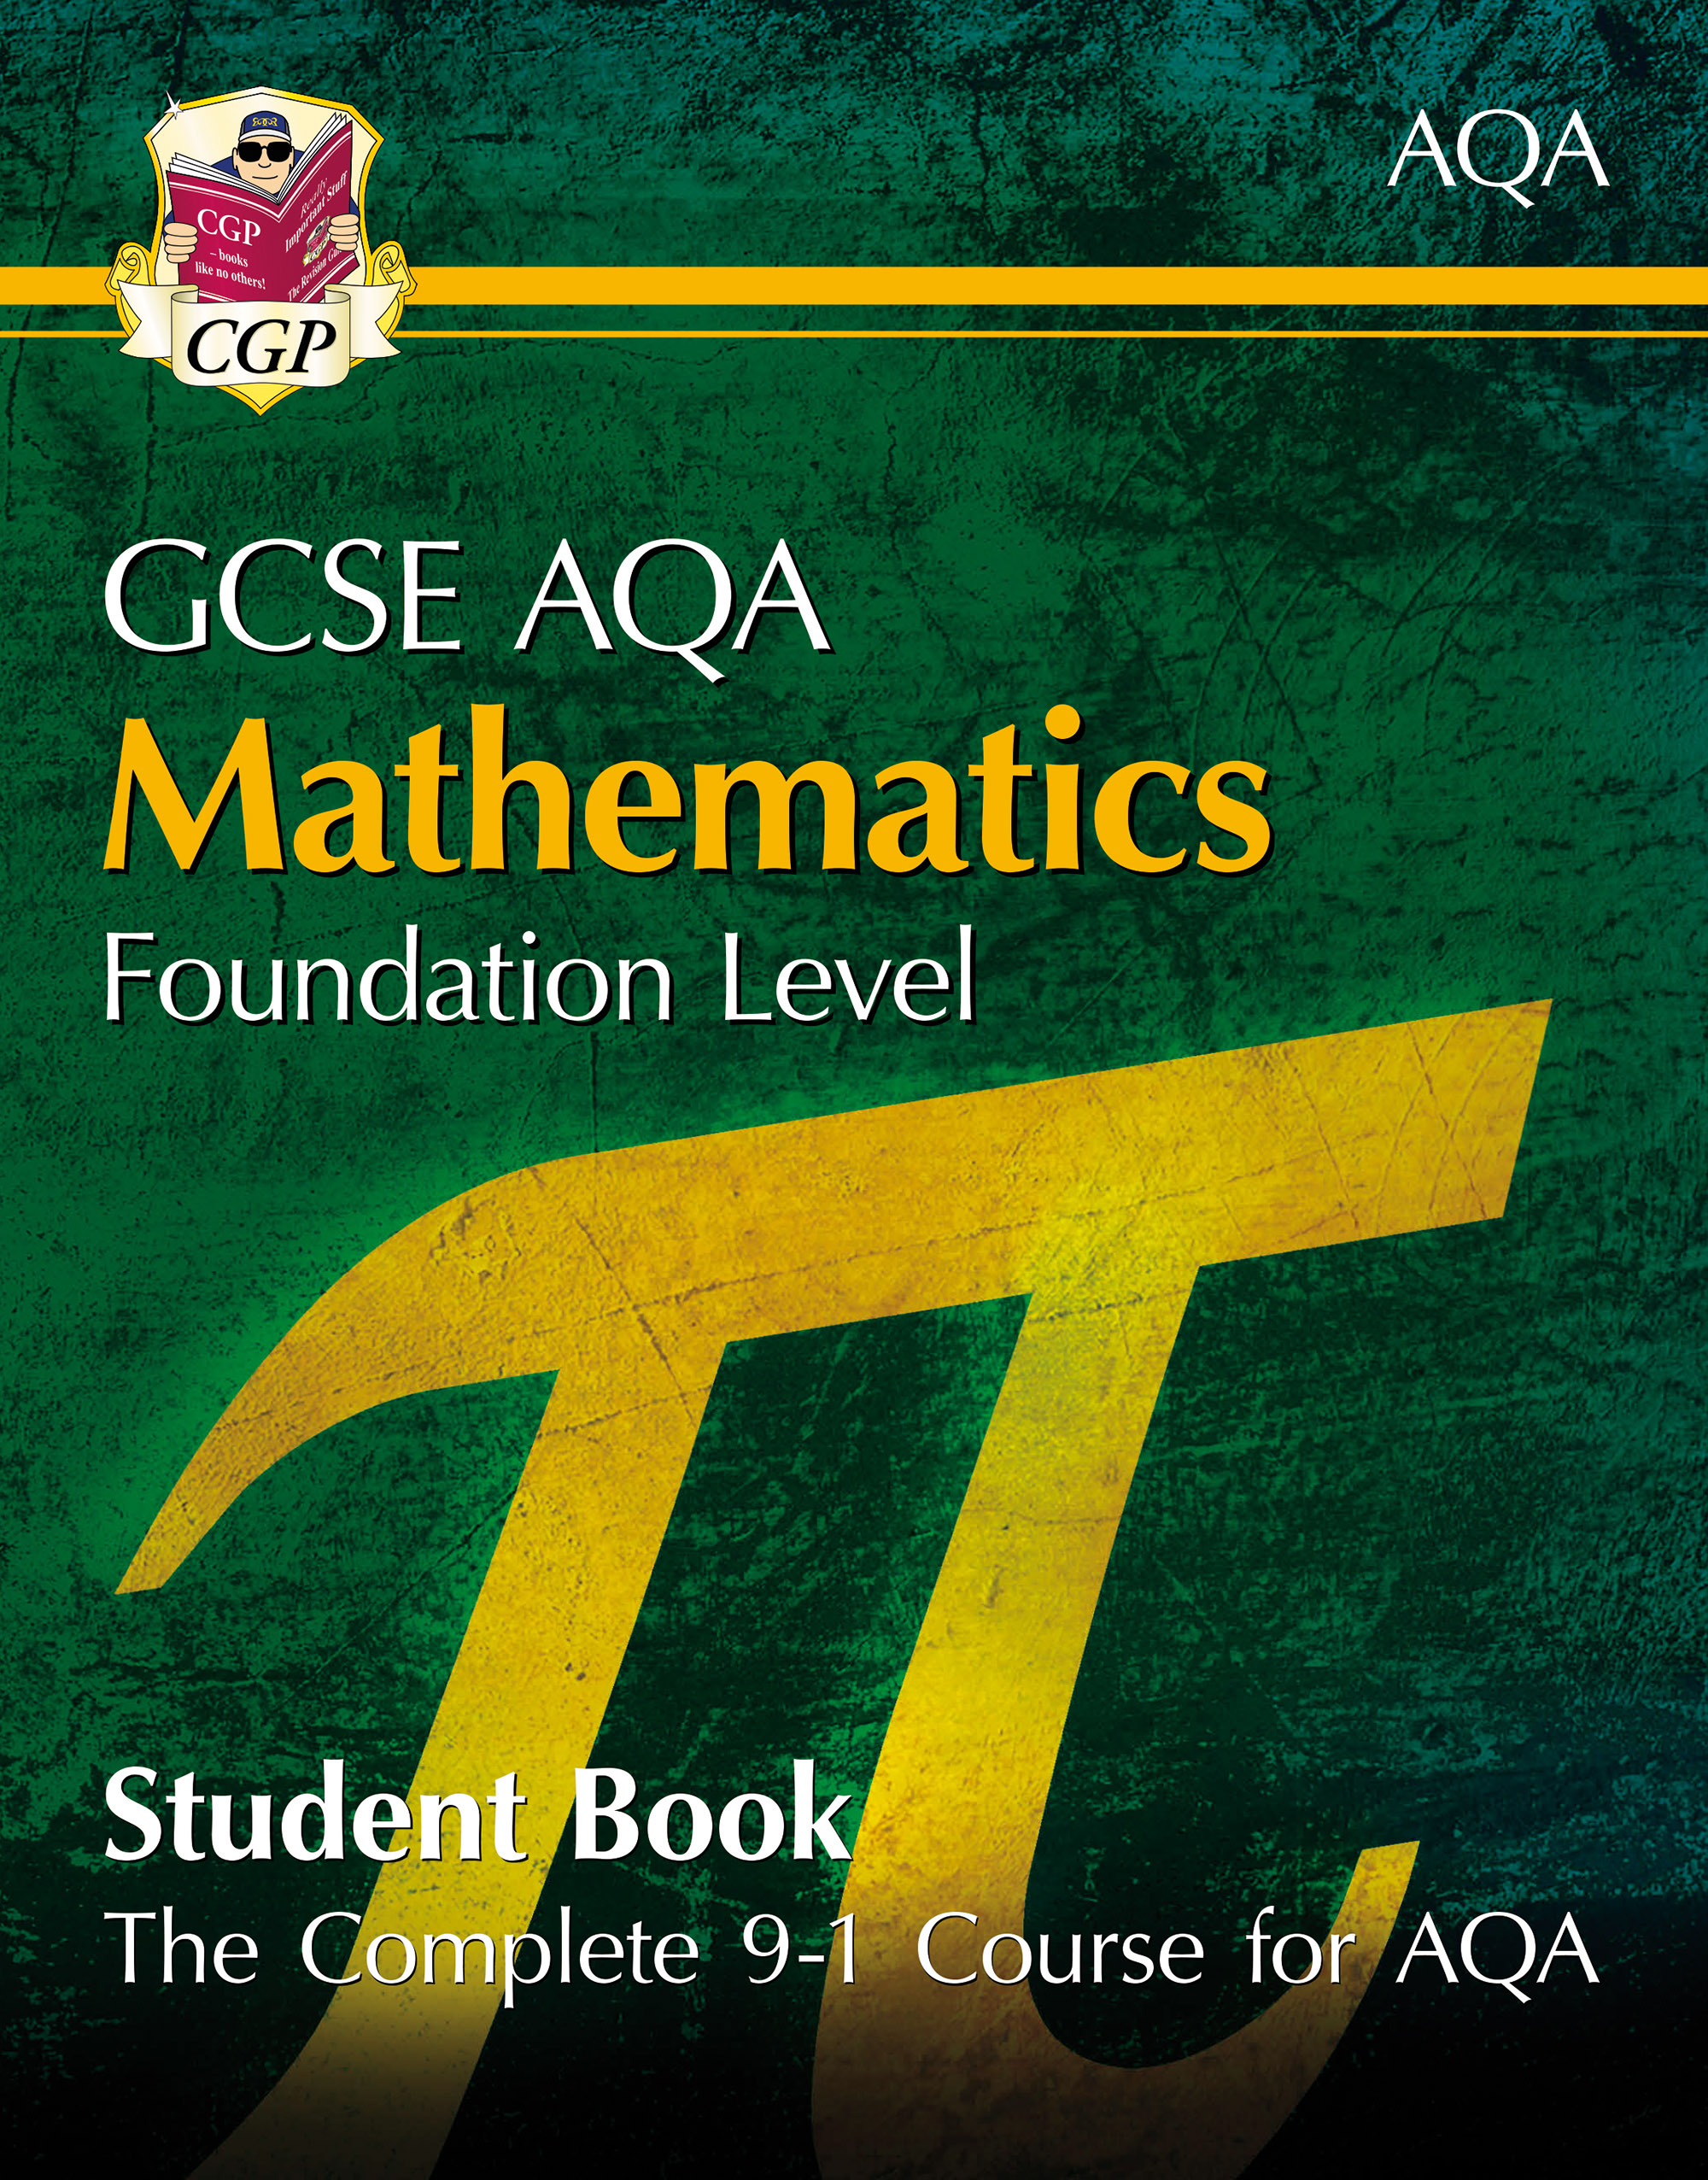 MQFT41D - New Grade 9-1 GCSE Maths AQA Student Book - Foundation Online Edition